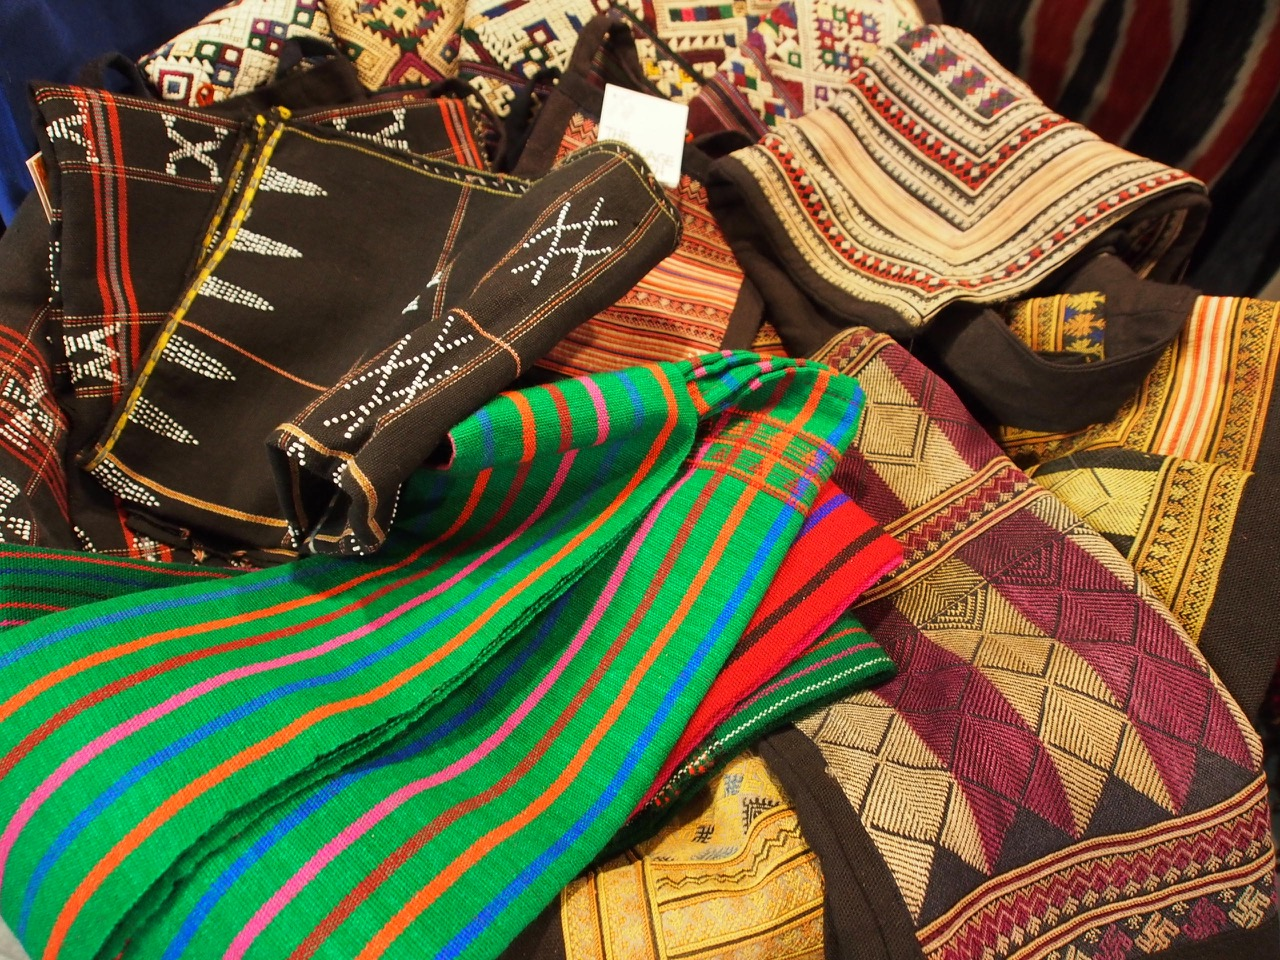 Ethnic bags made from Hmong embroidery